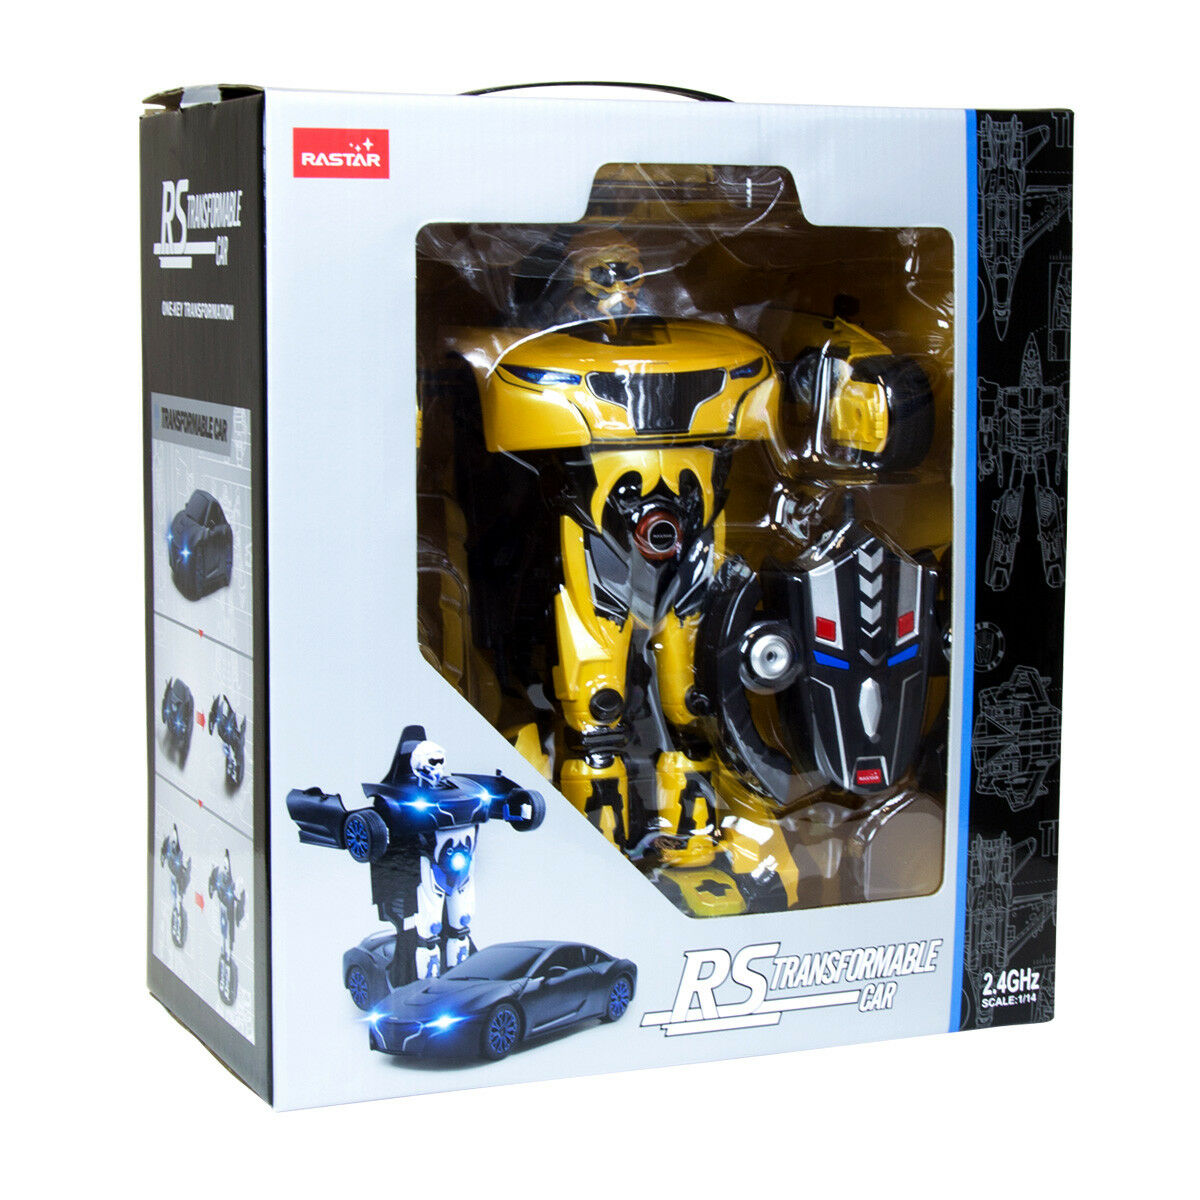 NEW RASTAR RC 1 14 RS X Man Transformers USB Remote Controlled Toy Car